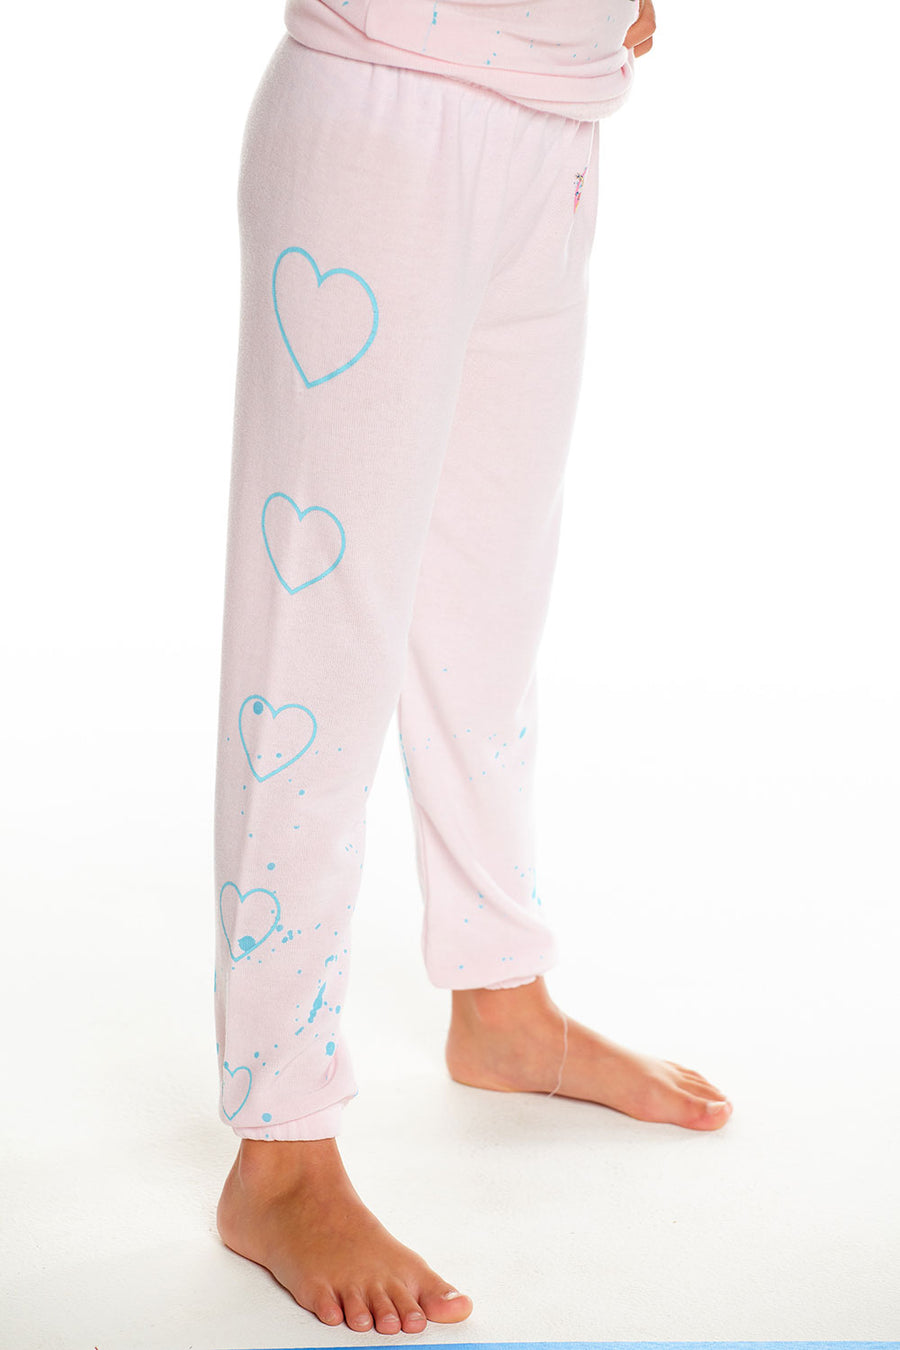 Little Mermaid - Little Mermaid Heart Pants, GIRLS, chaserbrand.com,chaser clothing,chaser apparel,chaser los angeles